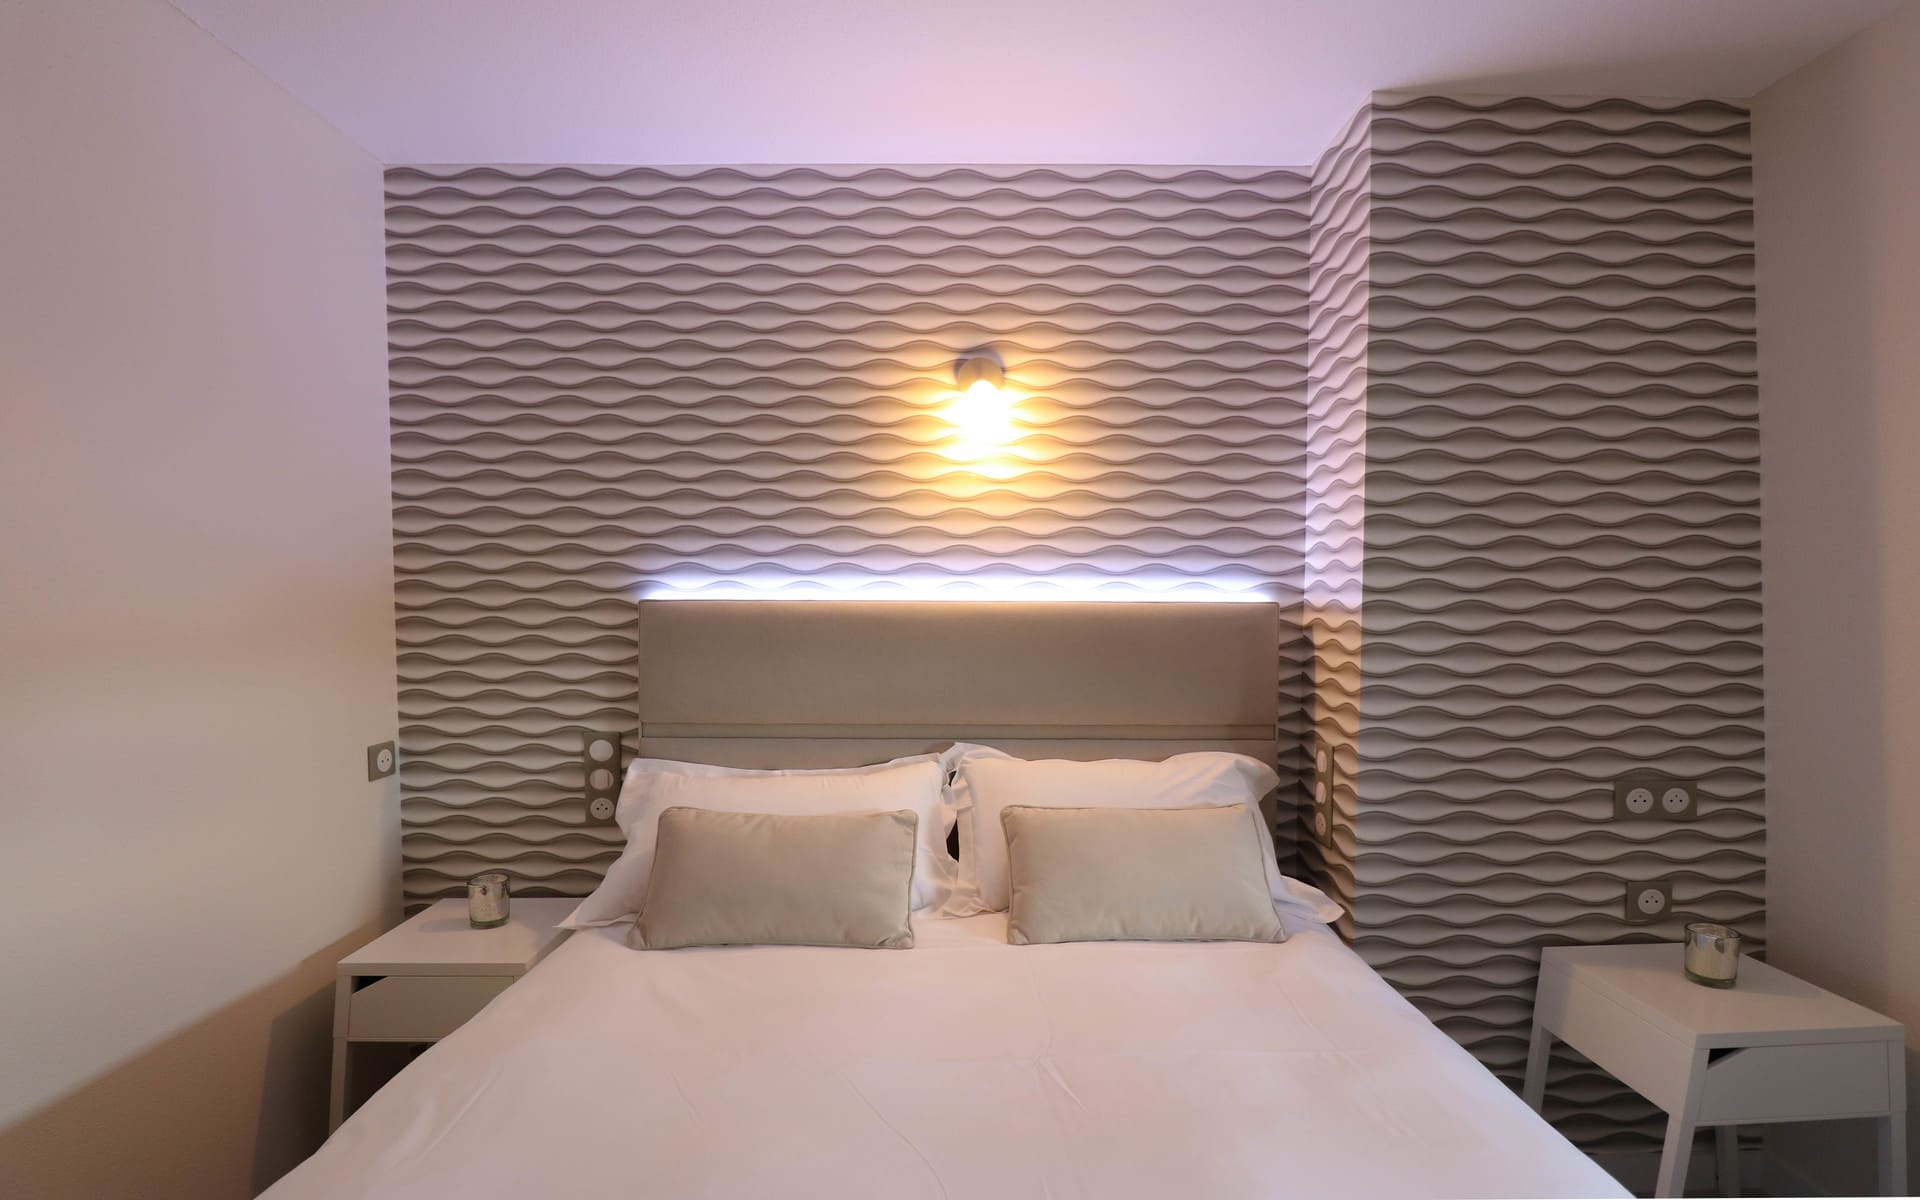 Location Decoration Rennes Hotel L Ortega 3 Stars Rennes Near Airport And Exhibition Park